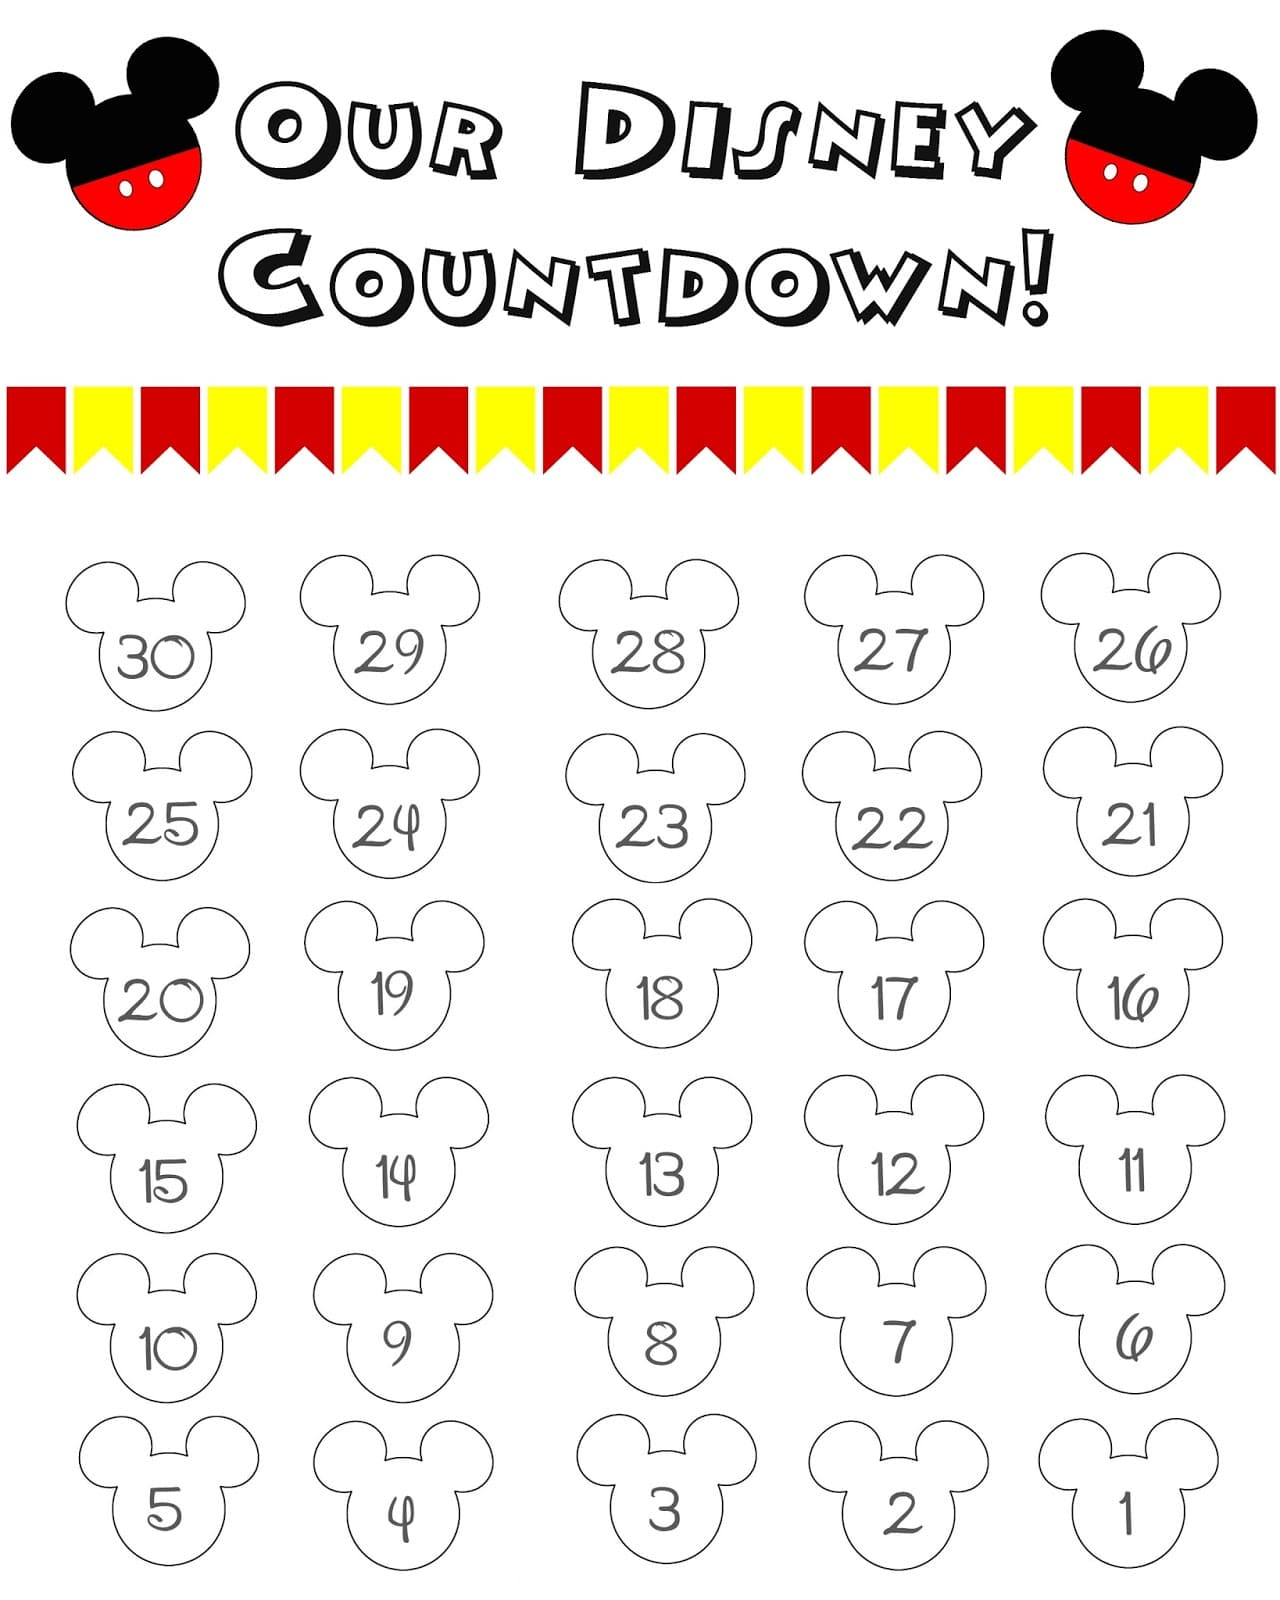 Great Ways to Countdown the Days to Your Disney World Vacation 1